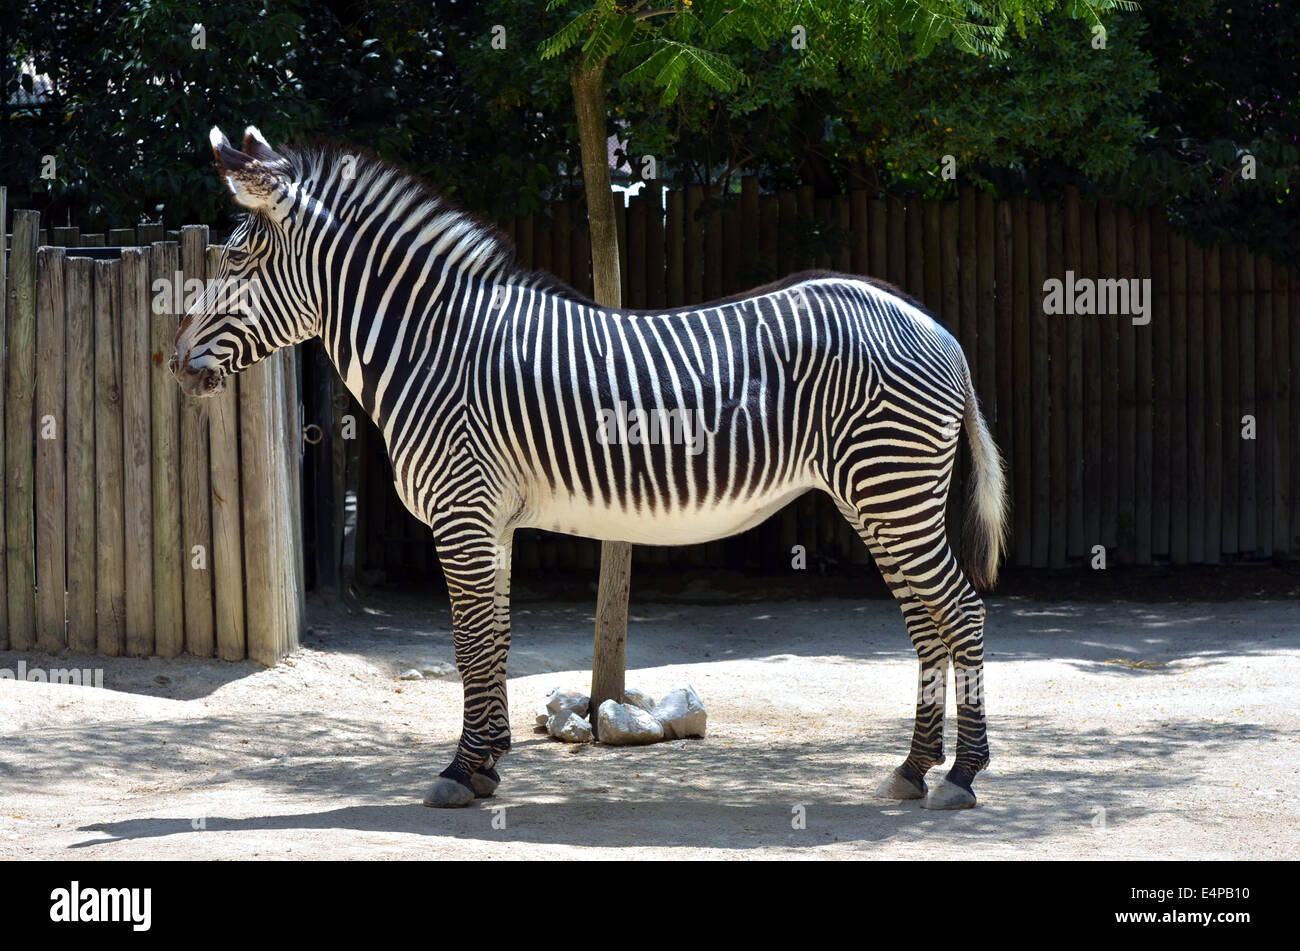 Zebra full body - Stock Image